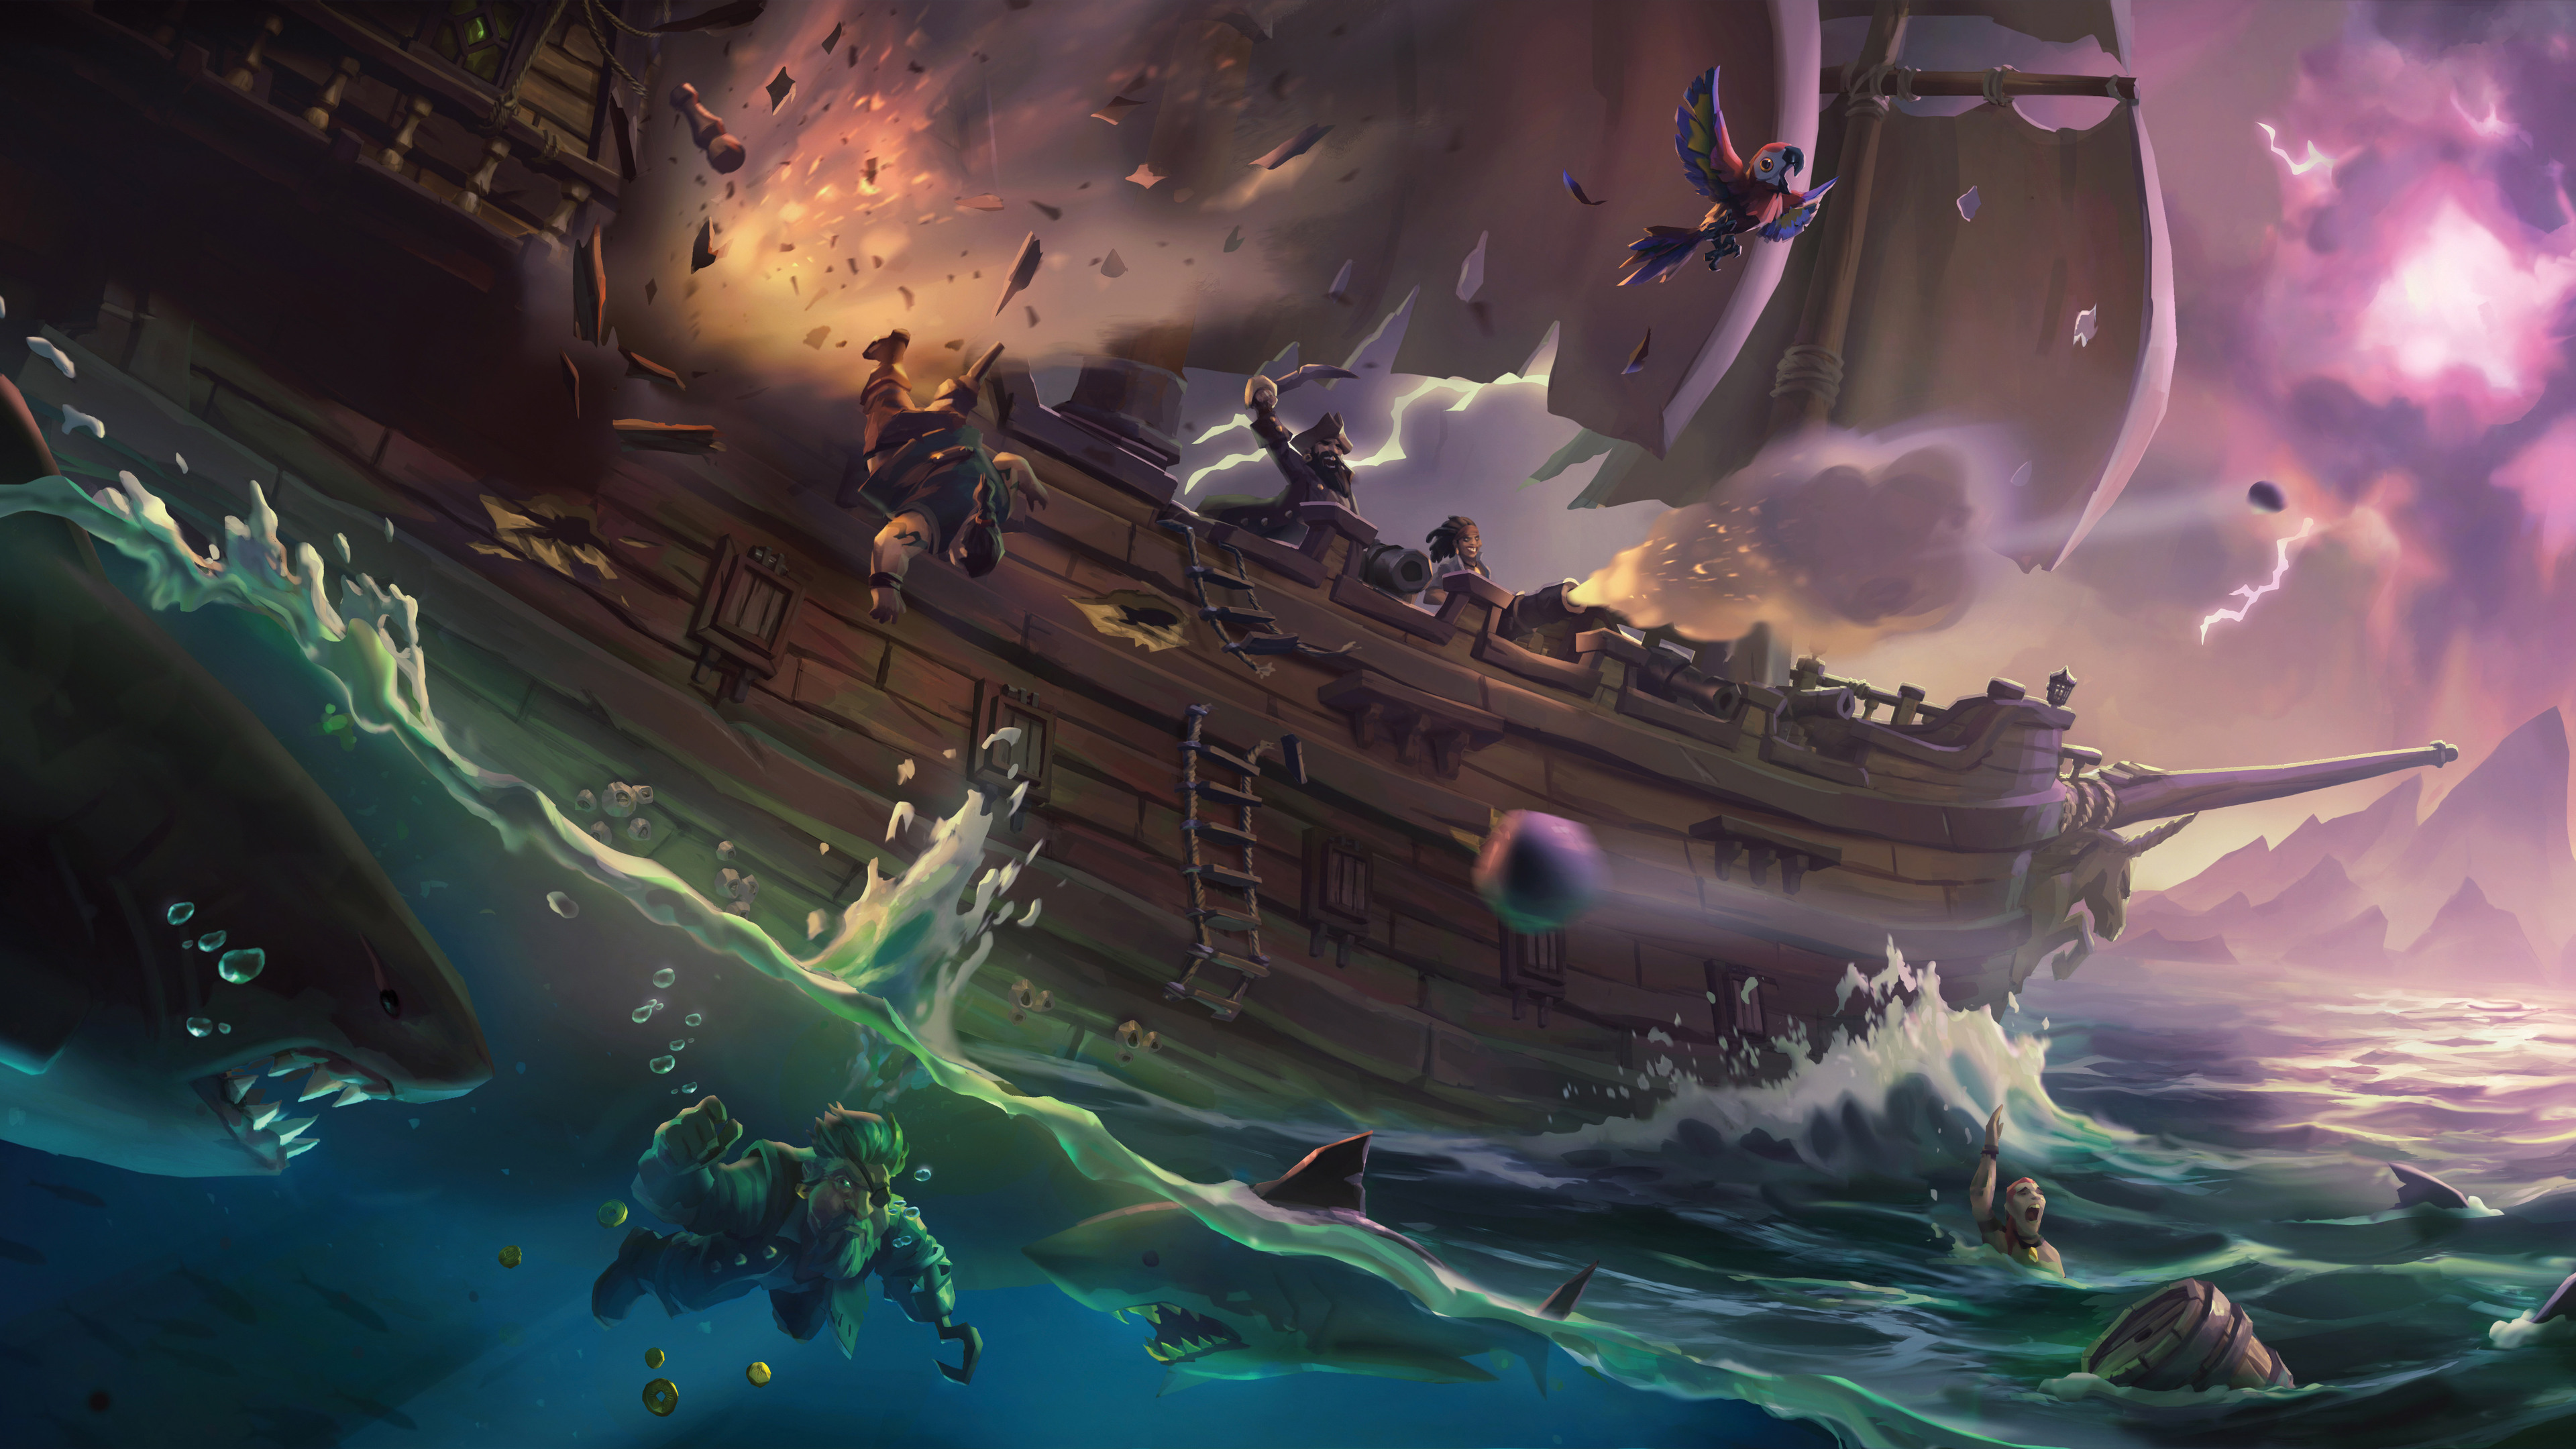 3840x2160 Sea Of Thieves 4k HD 4k Wallpapers, Images ...